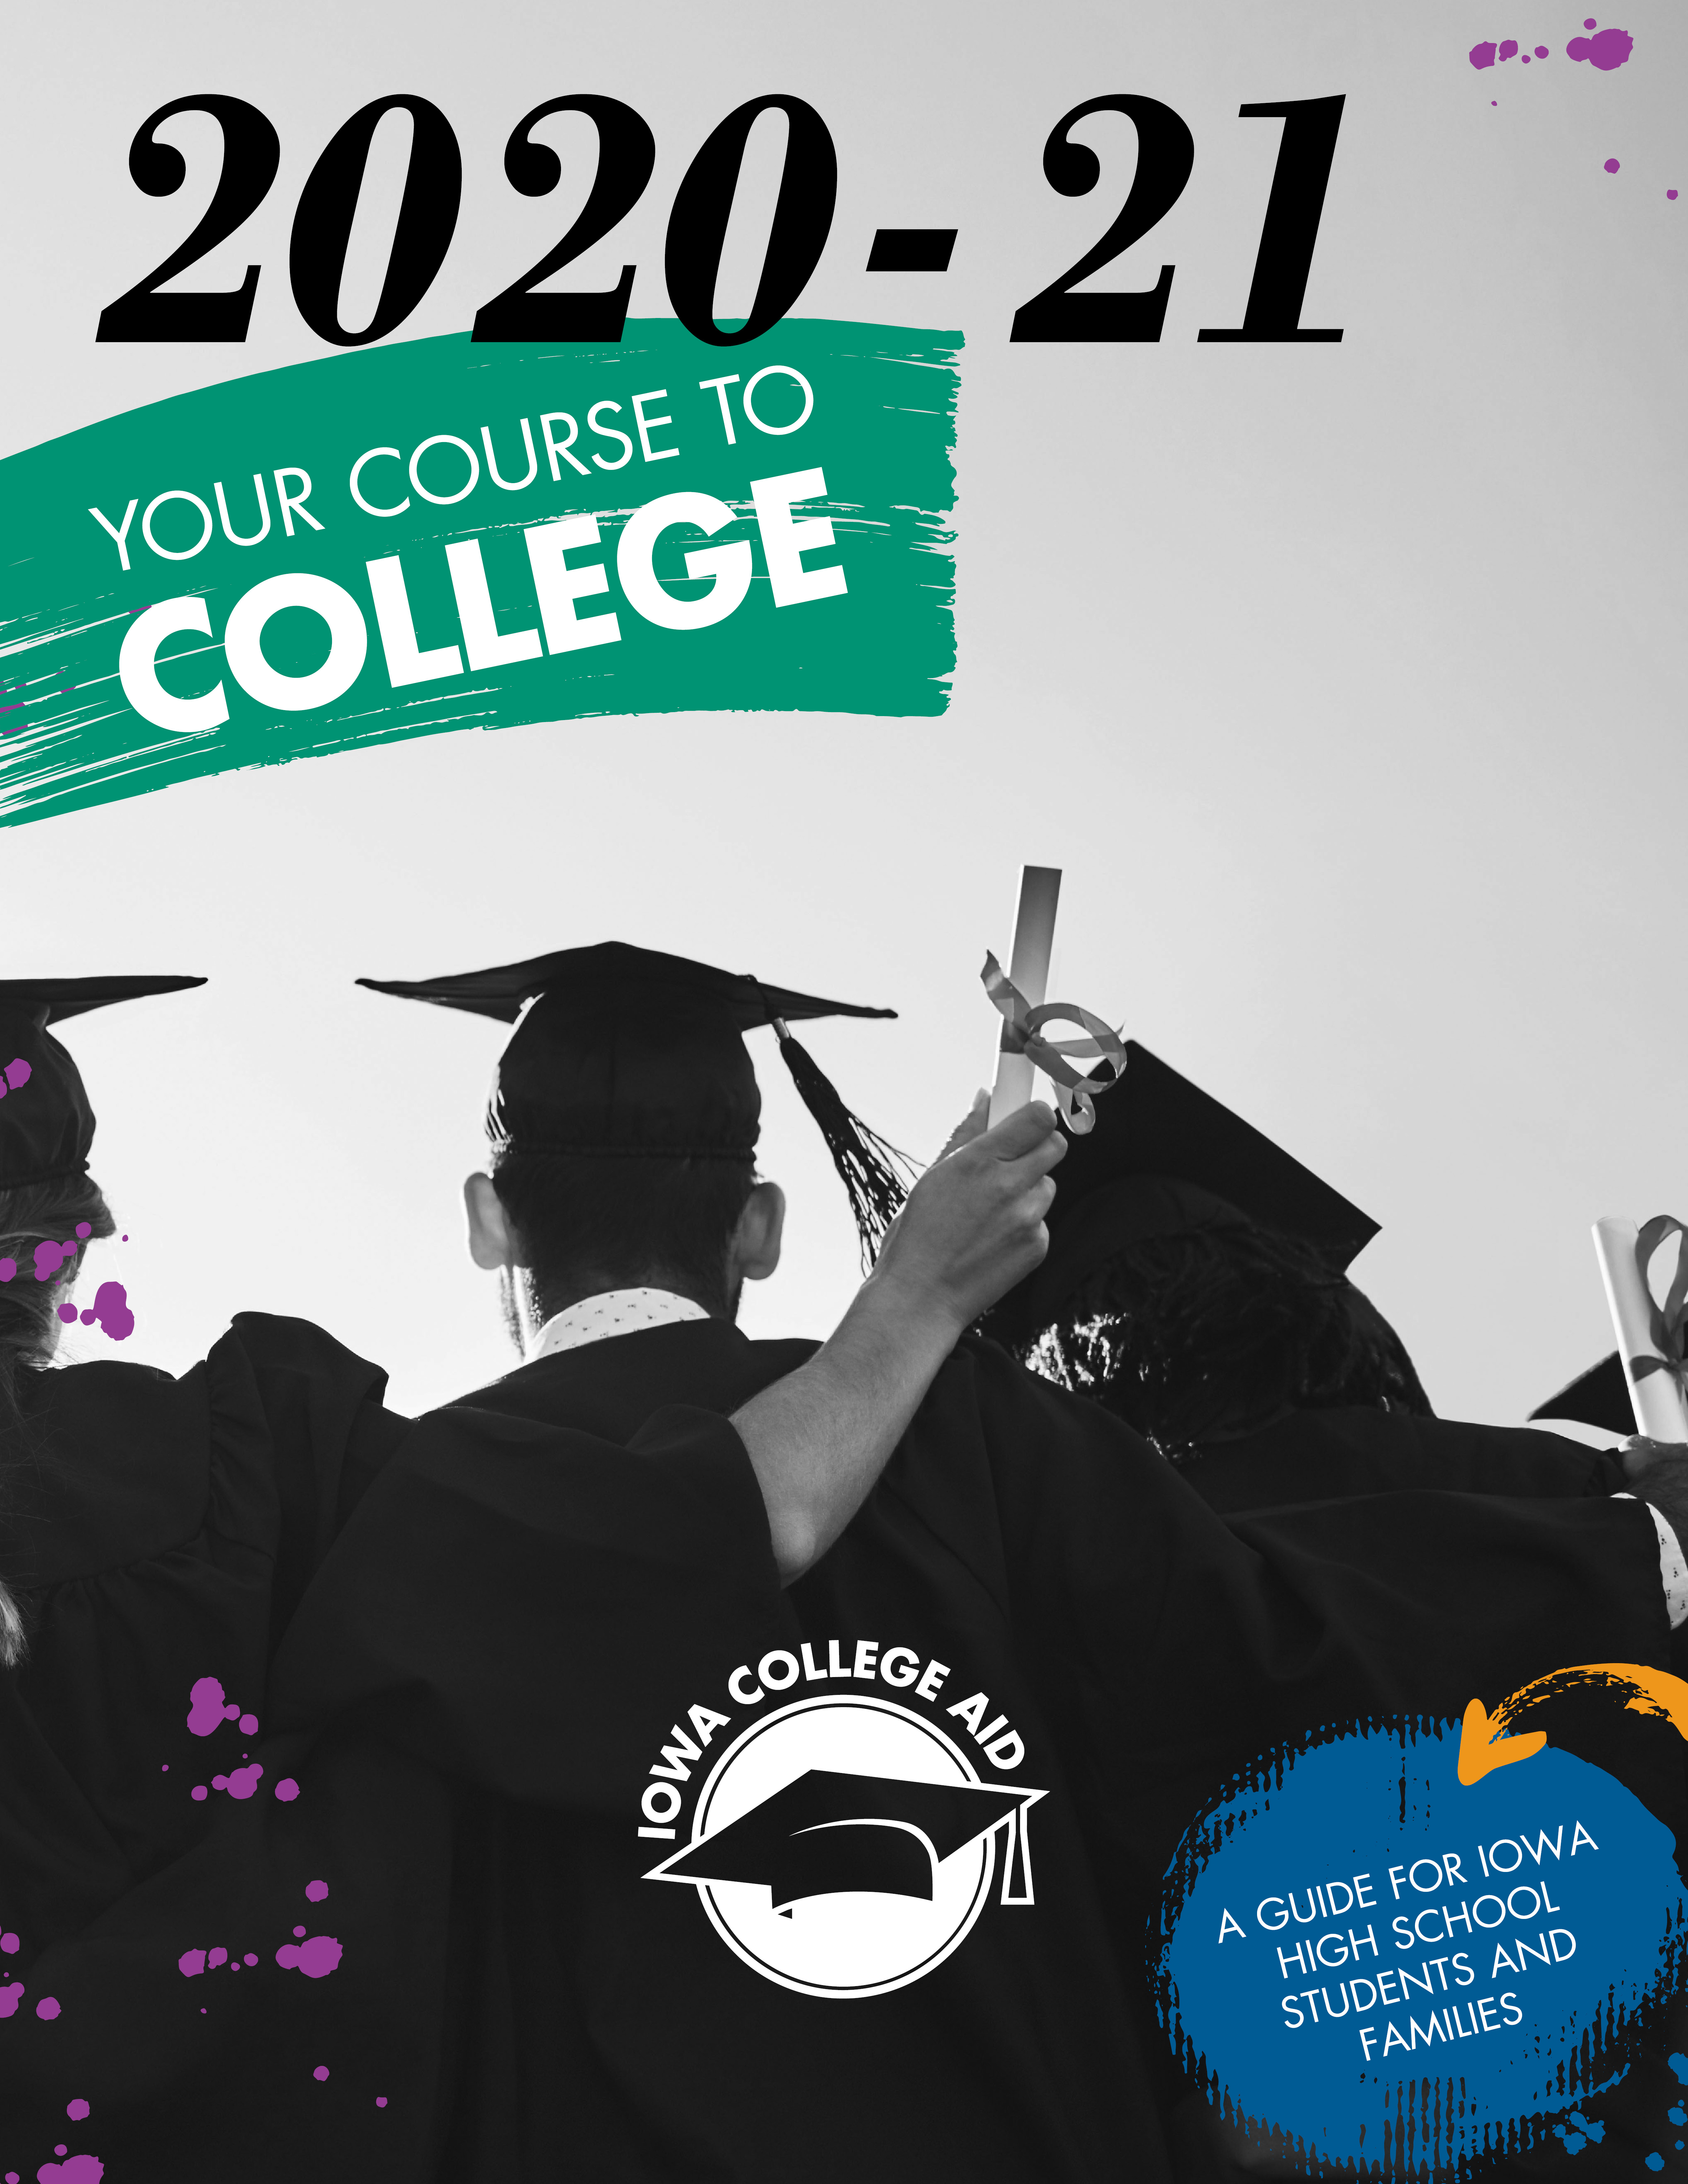 Your Course to College booklet cover